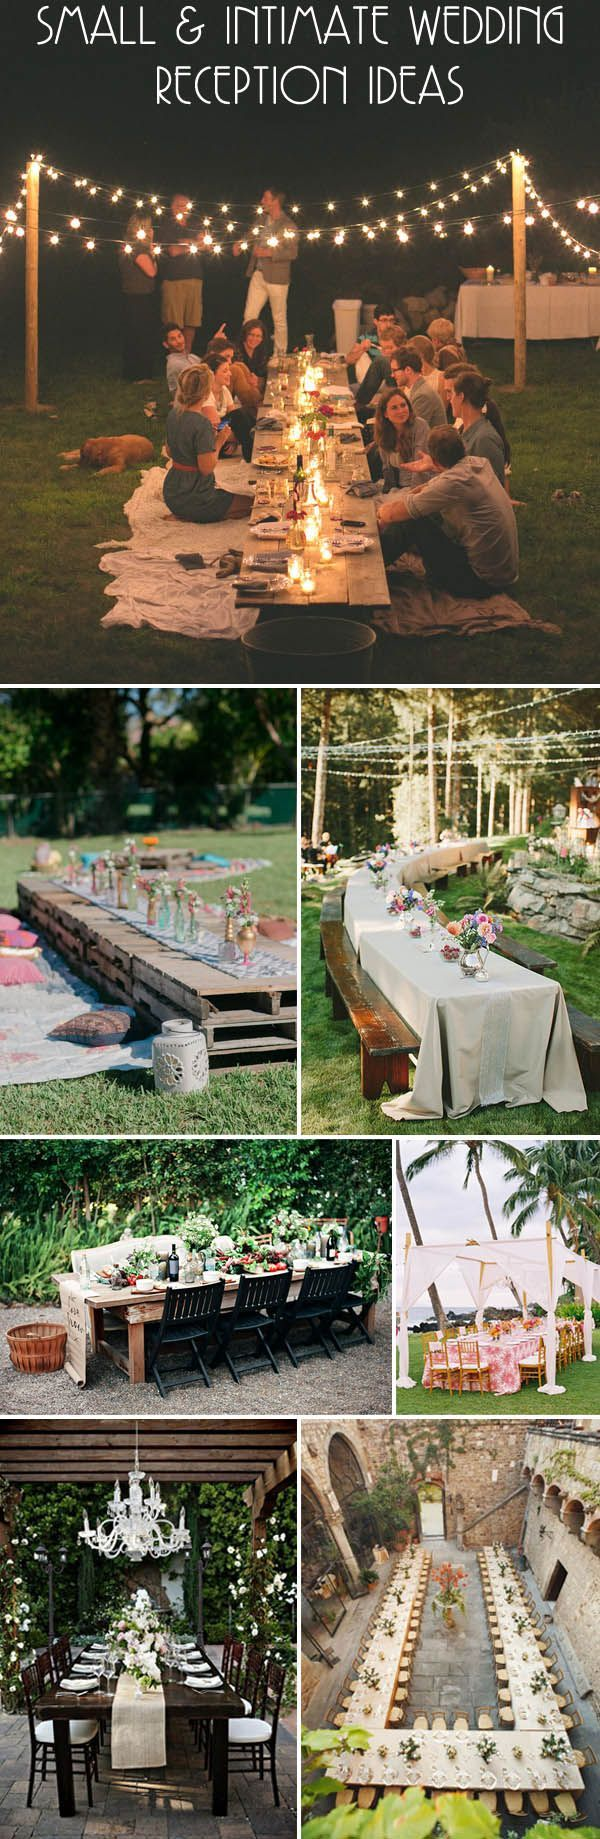 best 25 intimate ideas ideas on pinterest backyard weddings